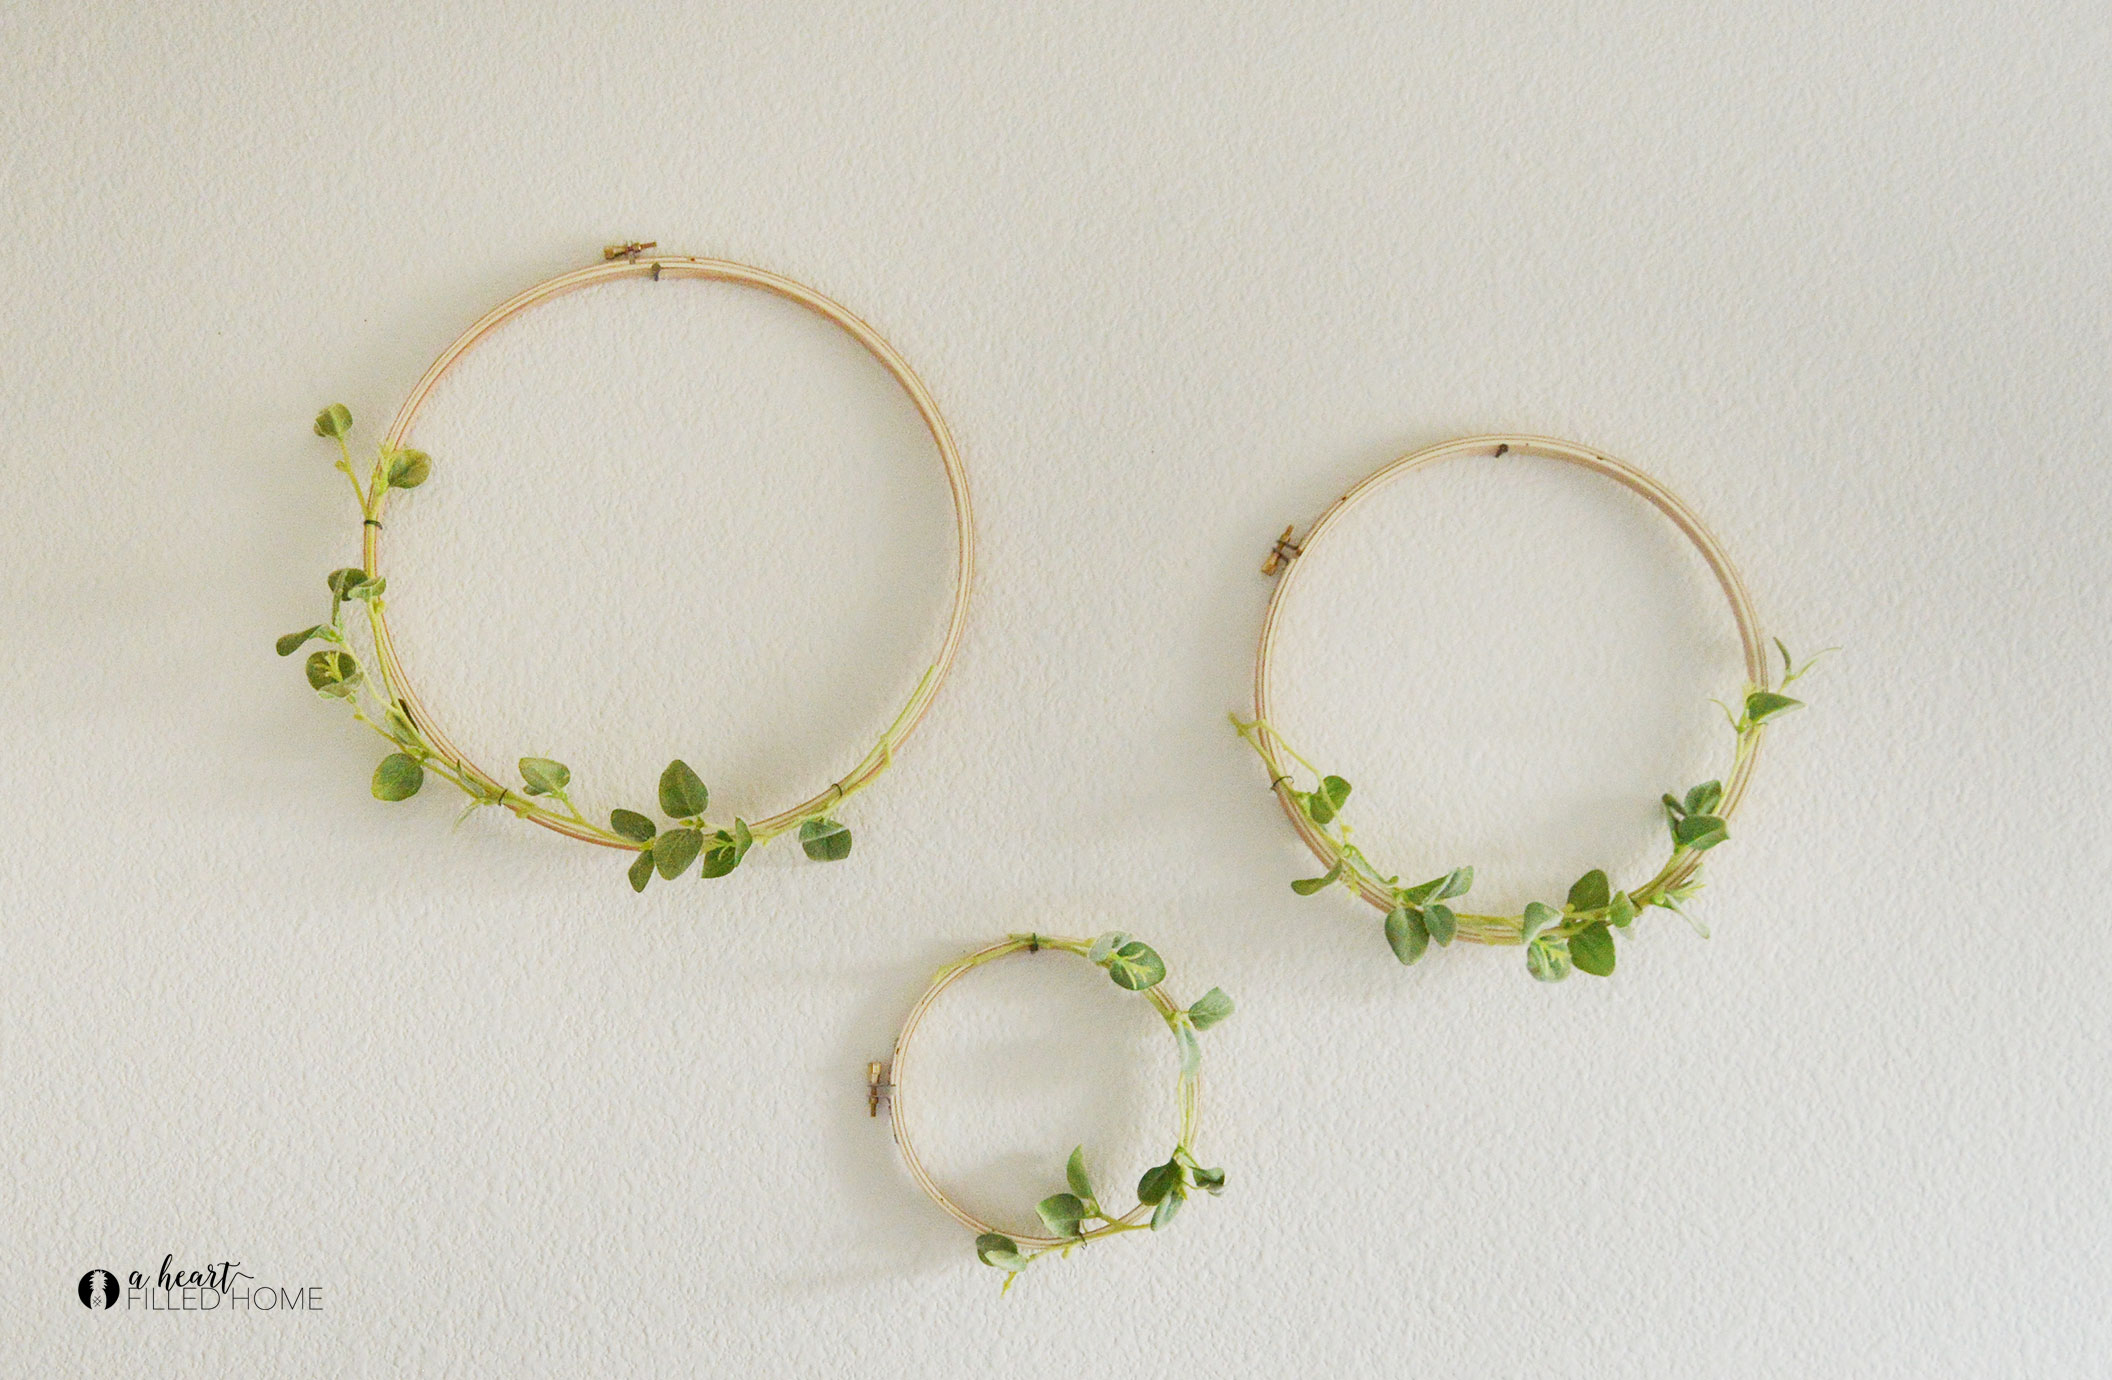 Easy DIY Hoop Wreath A Heart Filled Home DIY Home Decorating Amp Money Saving Tips